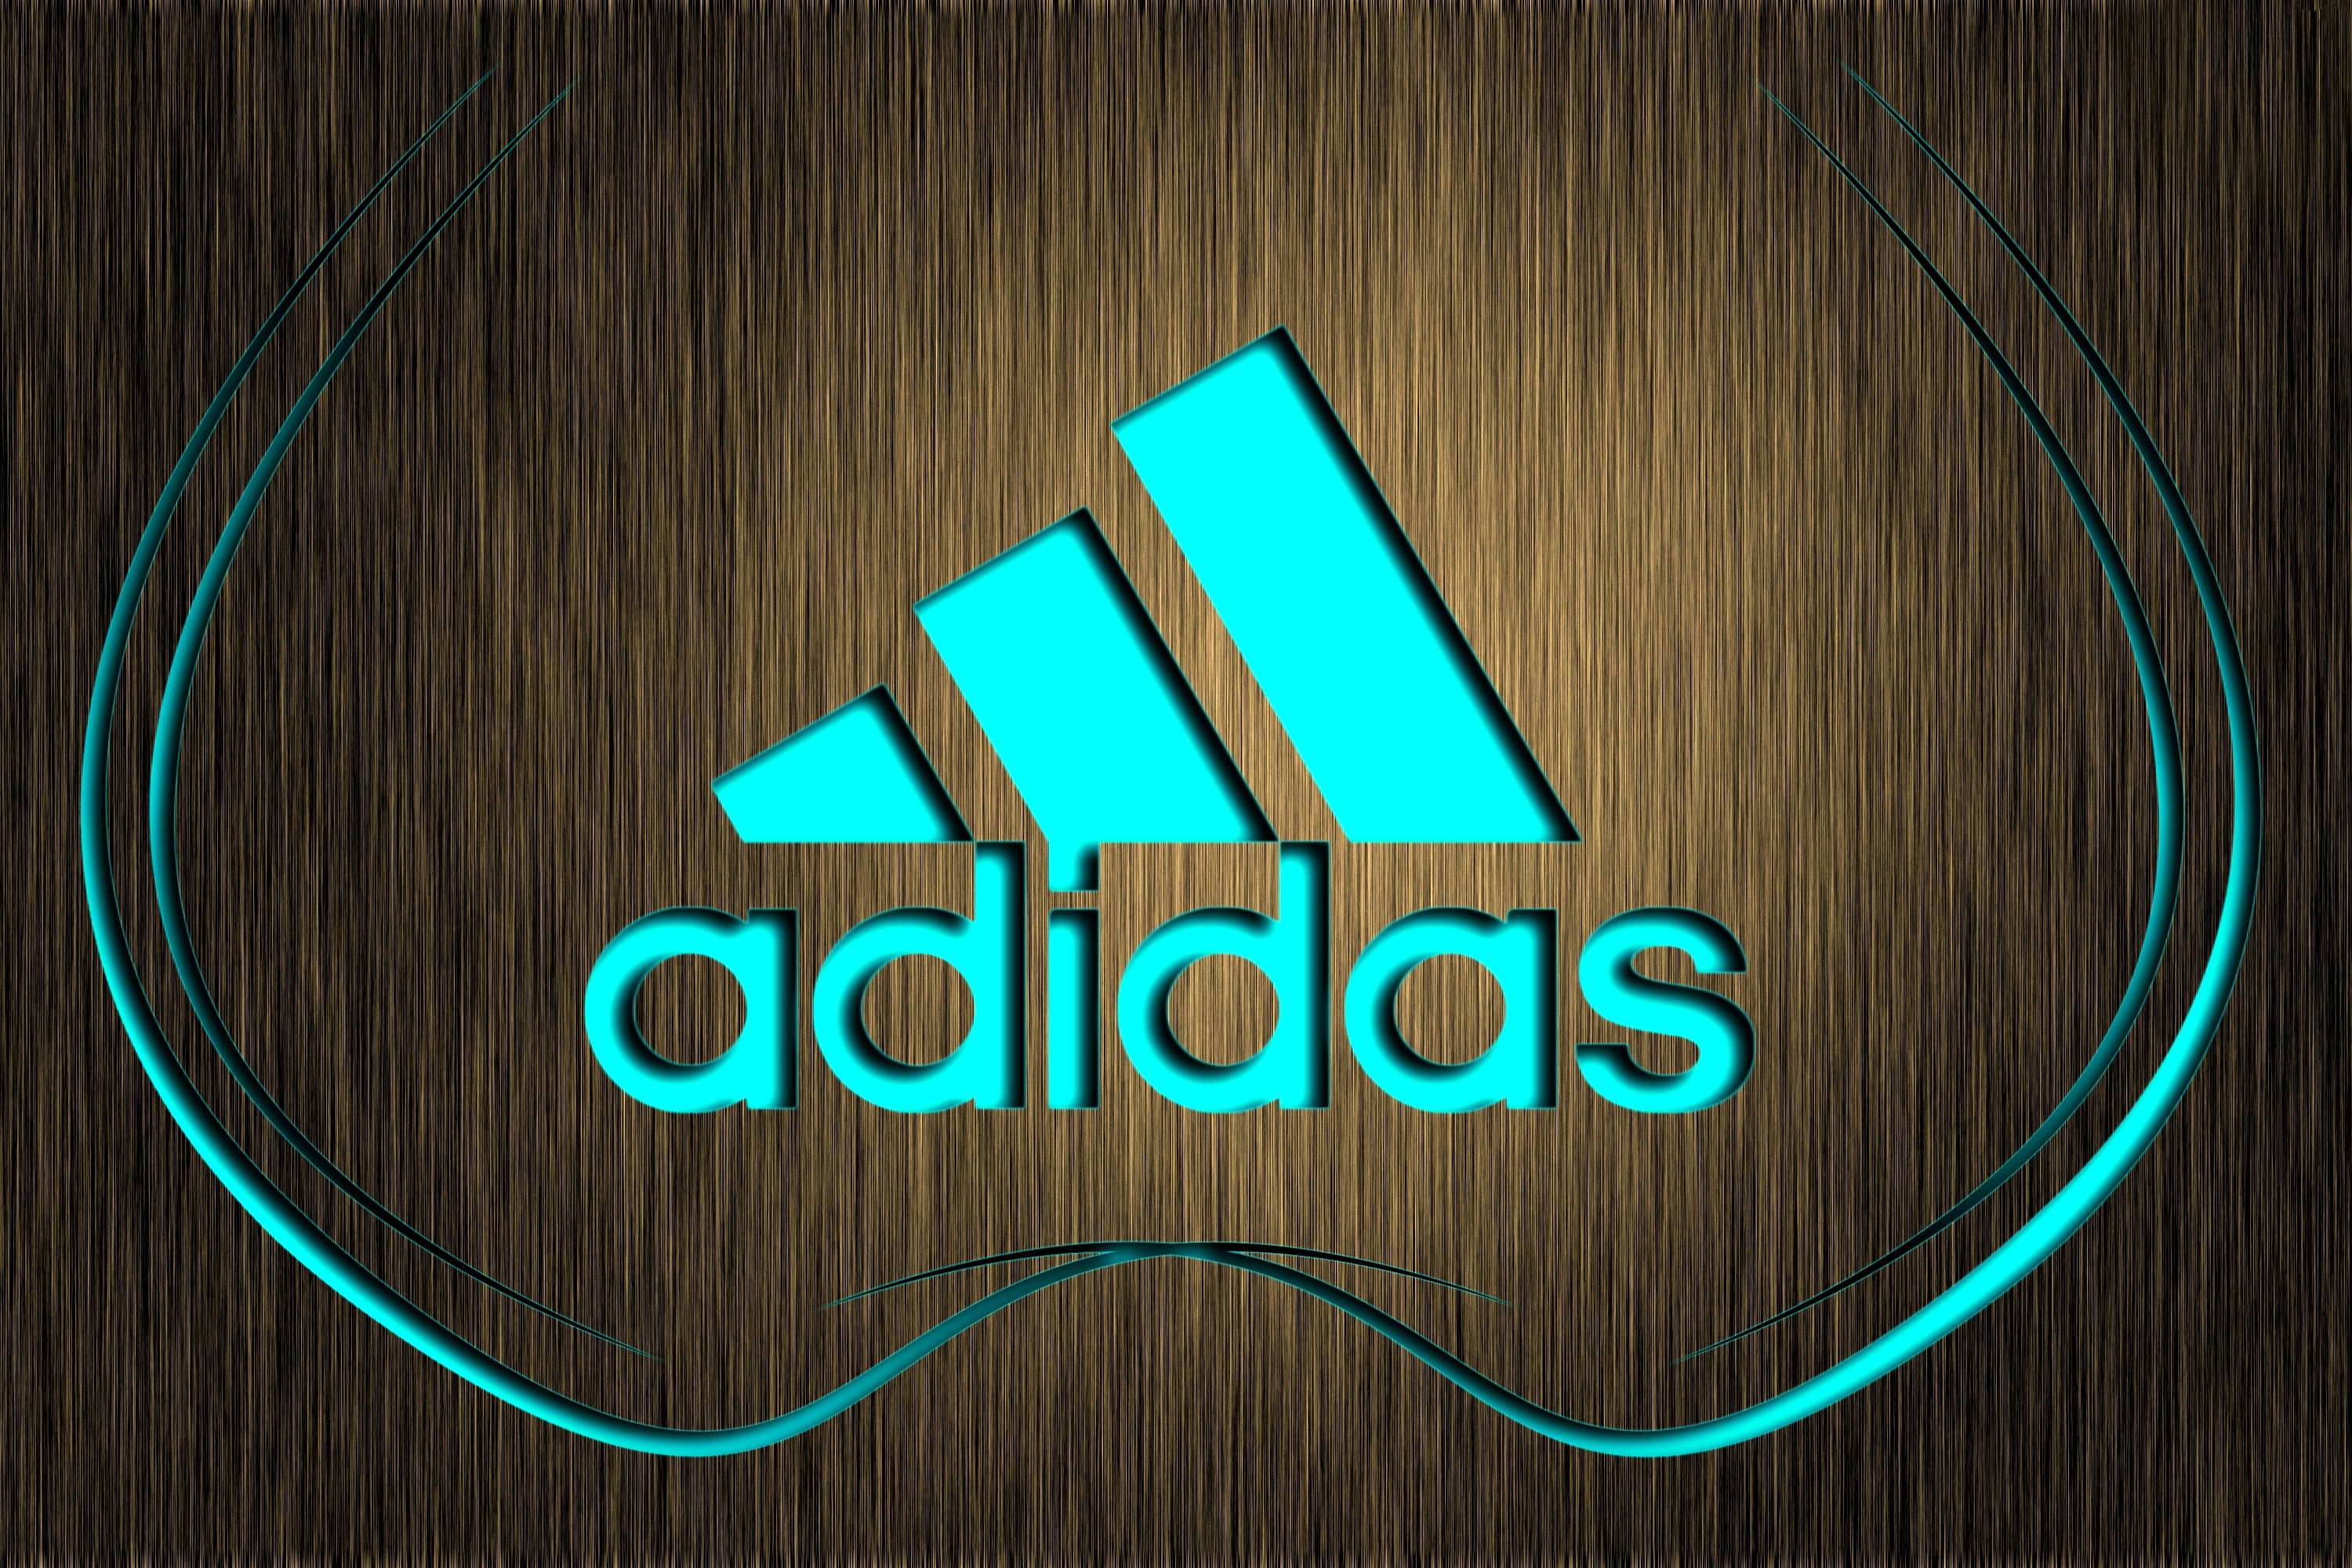 Cool 3d Ipad Wallpapers Adidas Wallpapers High Quality Download Free